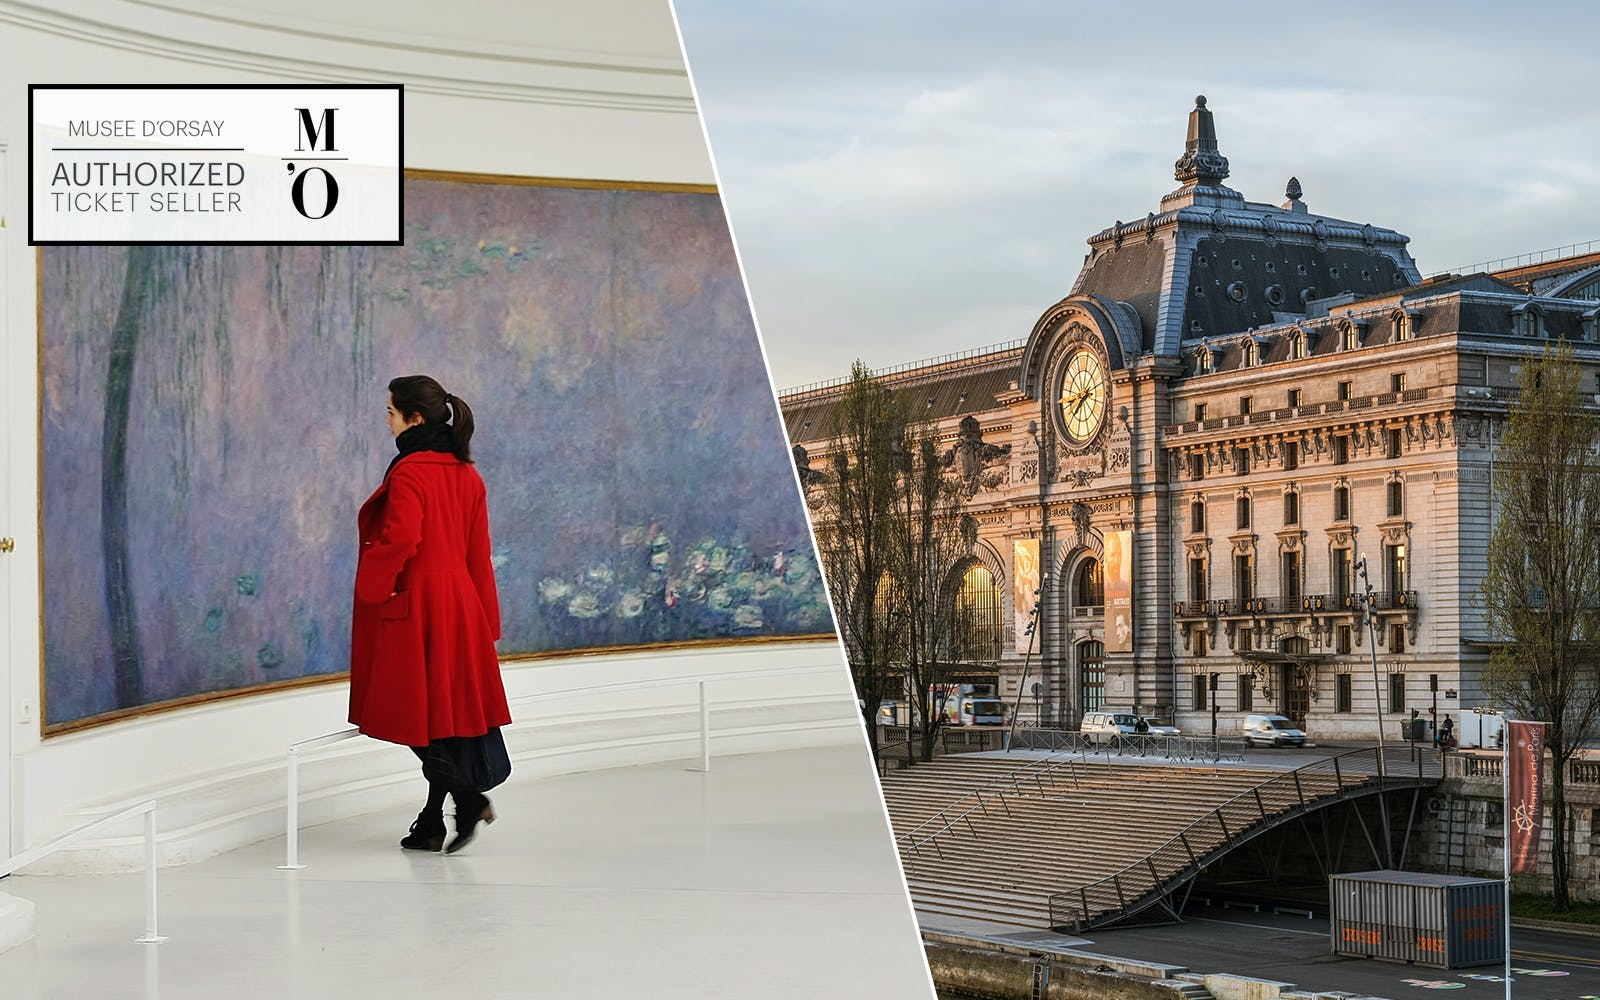 Priority Access to Musee de L'Orangerie and Musee d'Orsay